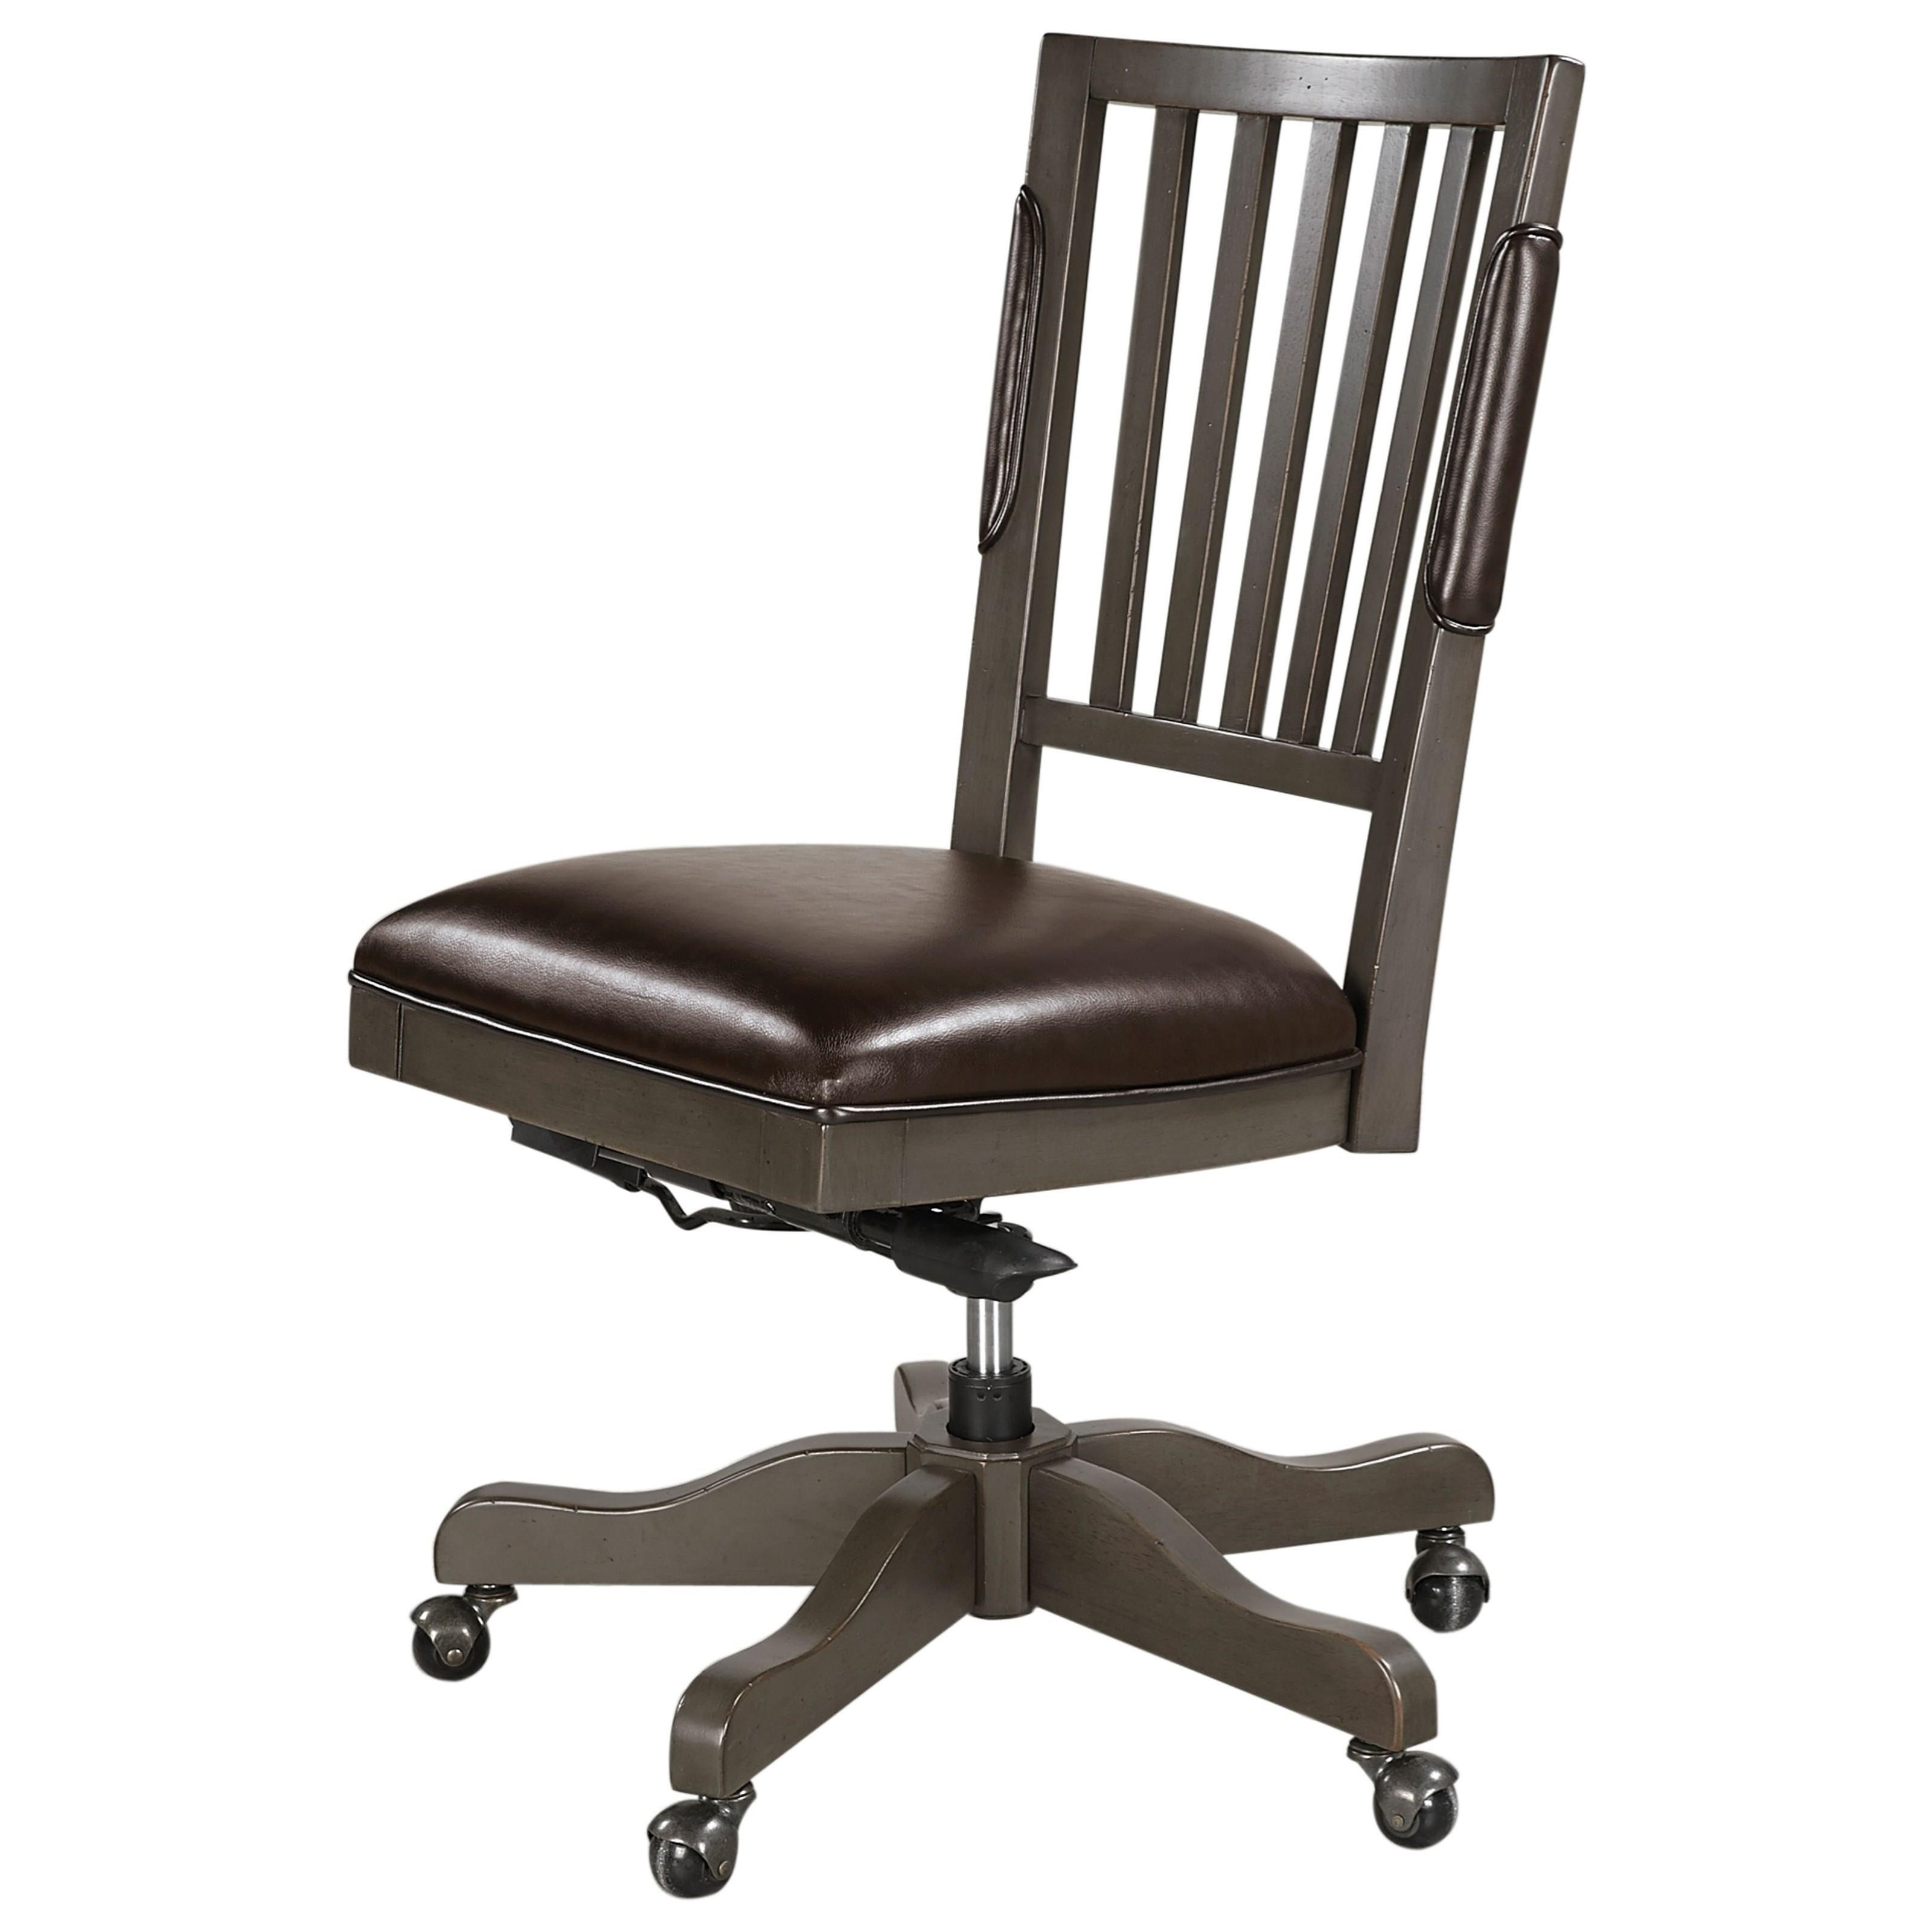 office chair dealers near me patio covers at home depot aspenhome oxford armless johnny janosik